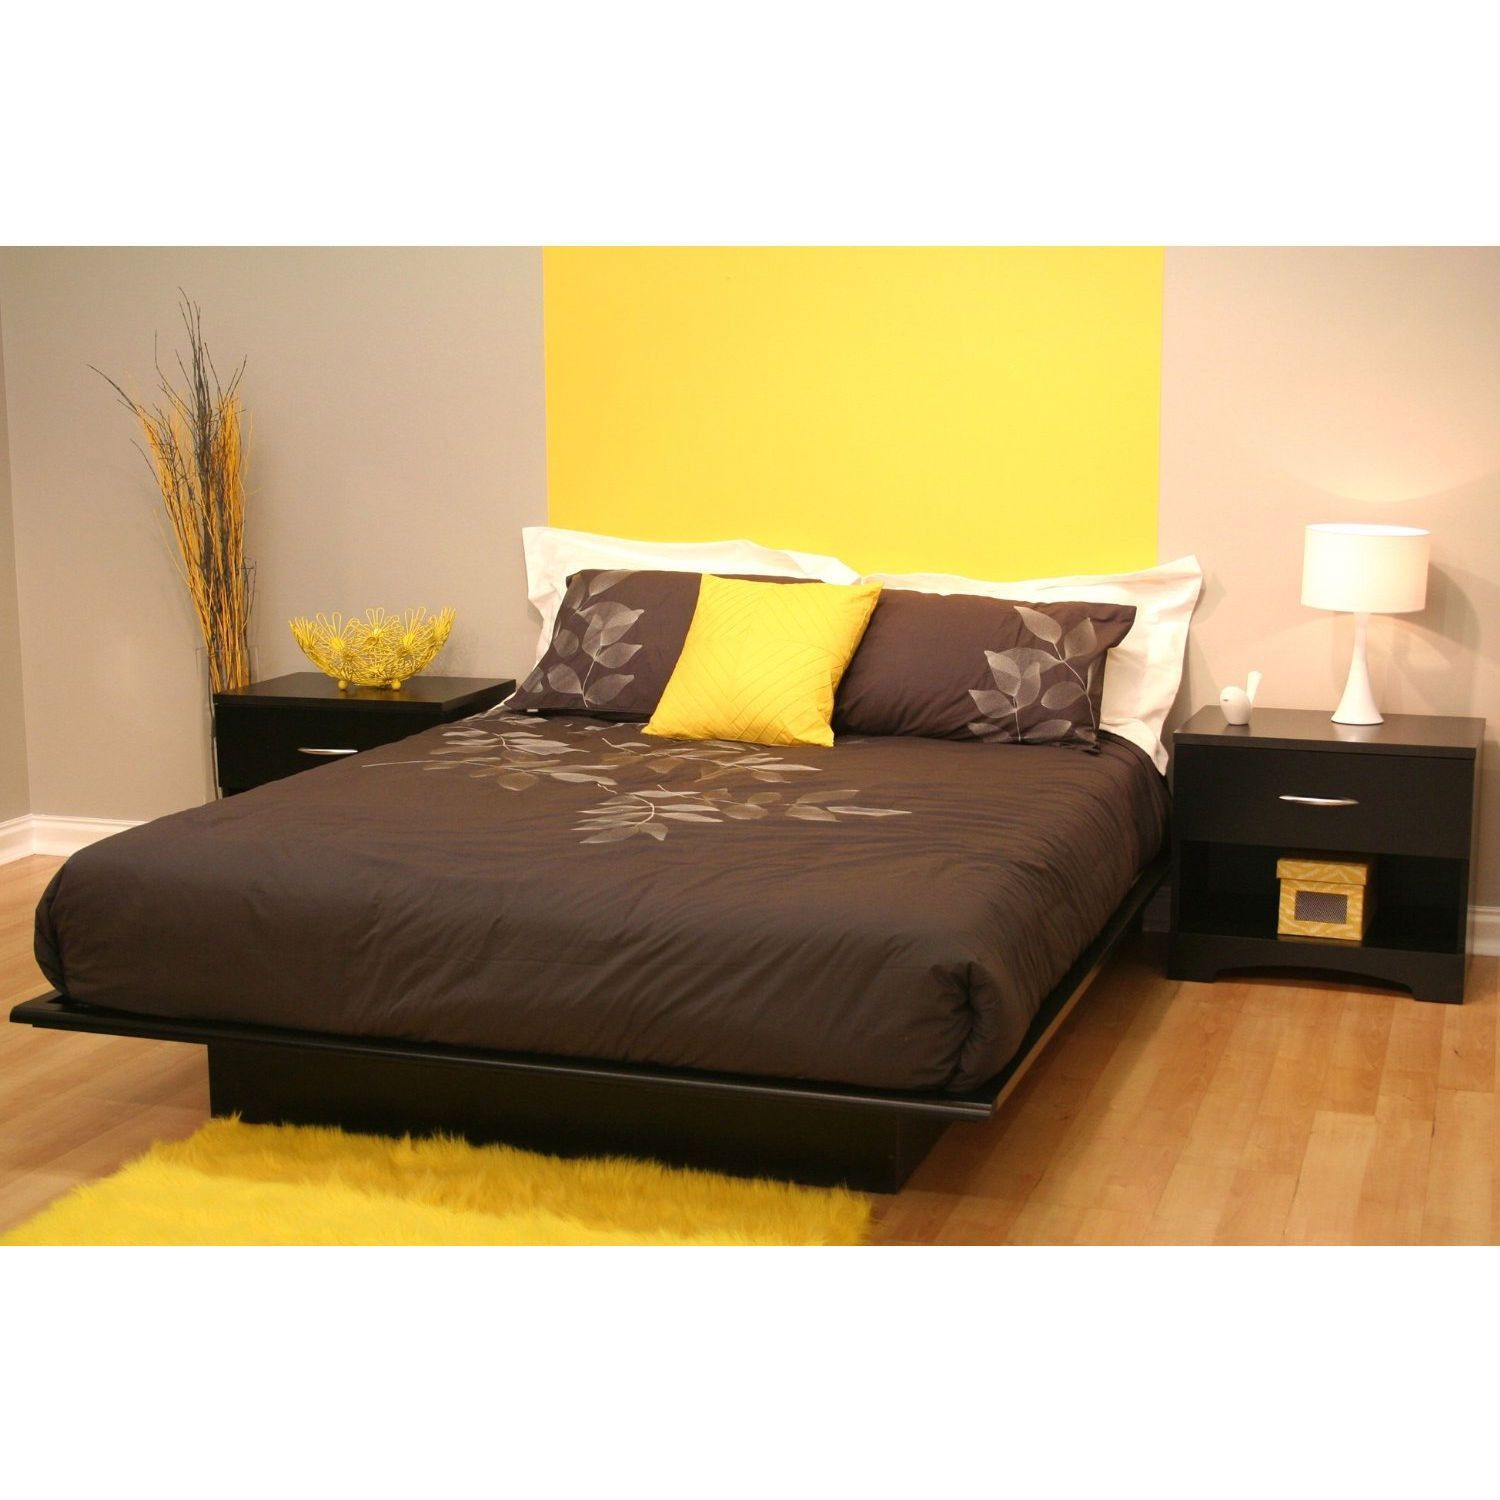 Best Queen Size Modern Platform Bed Frame In Black Wood Finish 400 x 300